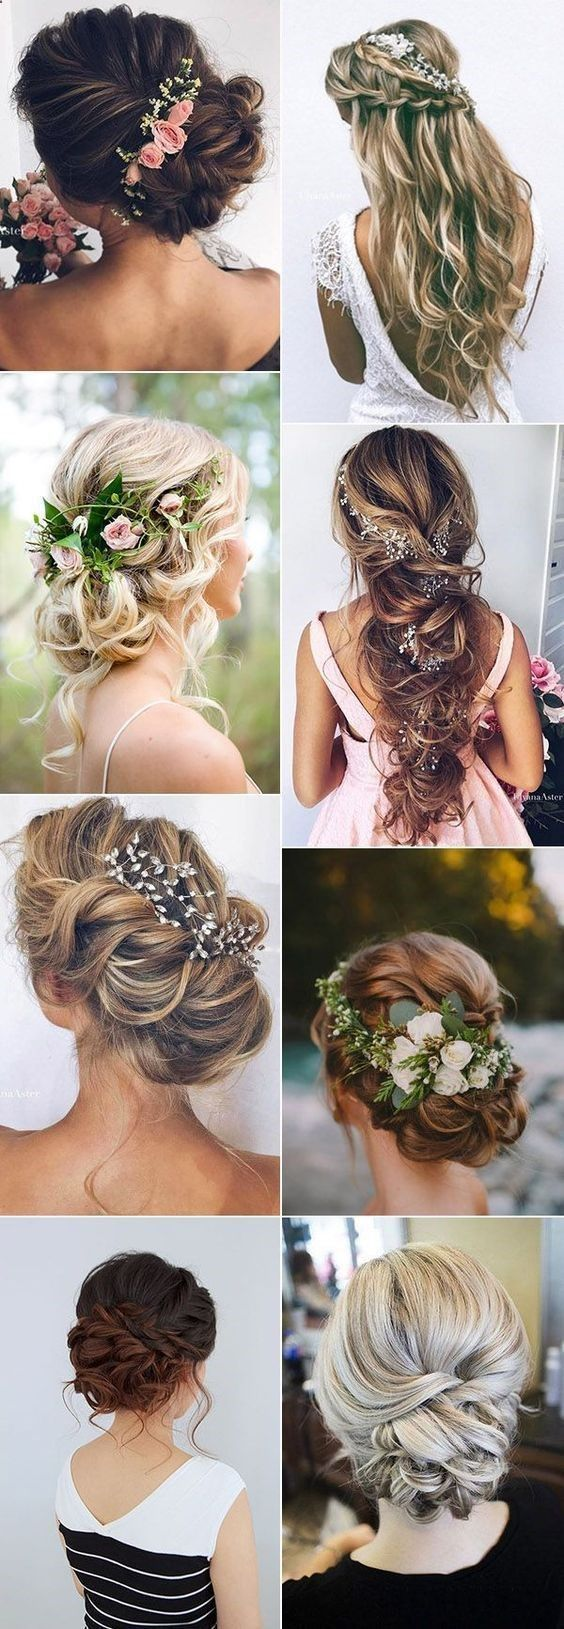 Photo of 6 DIY Wedding Ideas That Can Save You Money Visit More Roman…